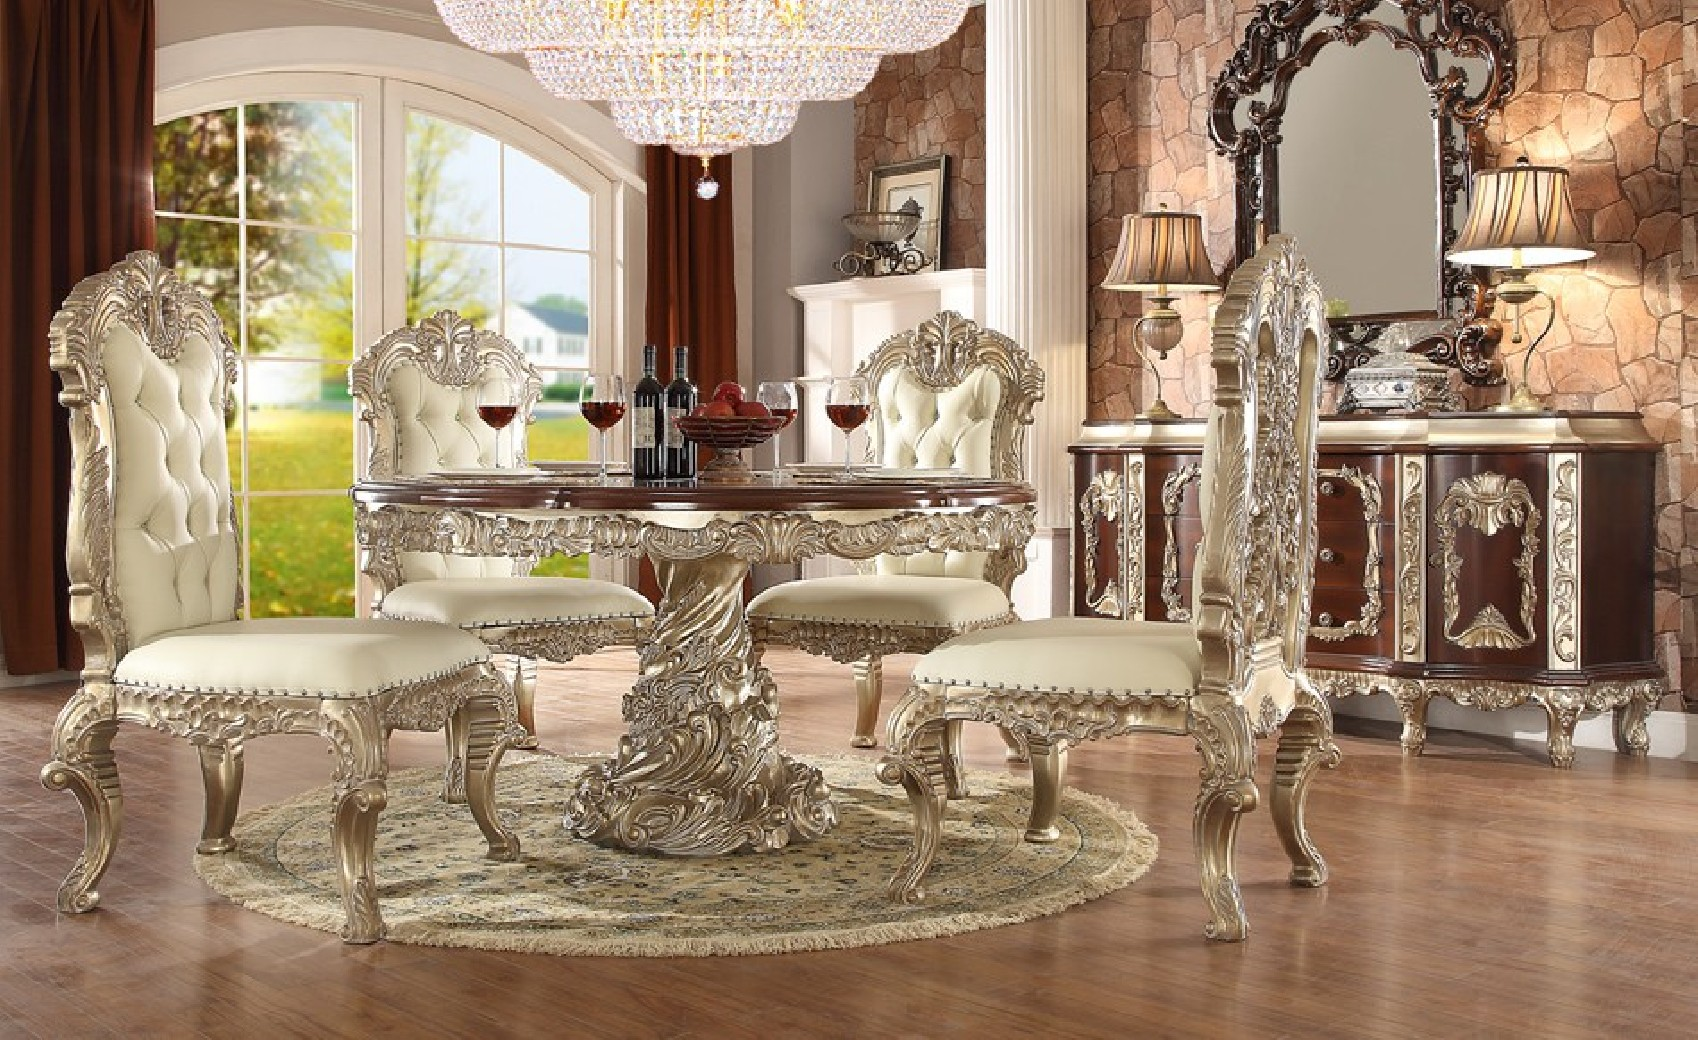 H8017 Antique White Finish Dining Set Homey Design Victorian, European U0026  Classic Design